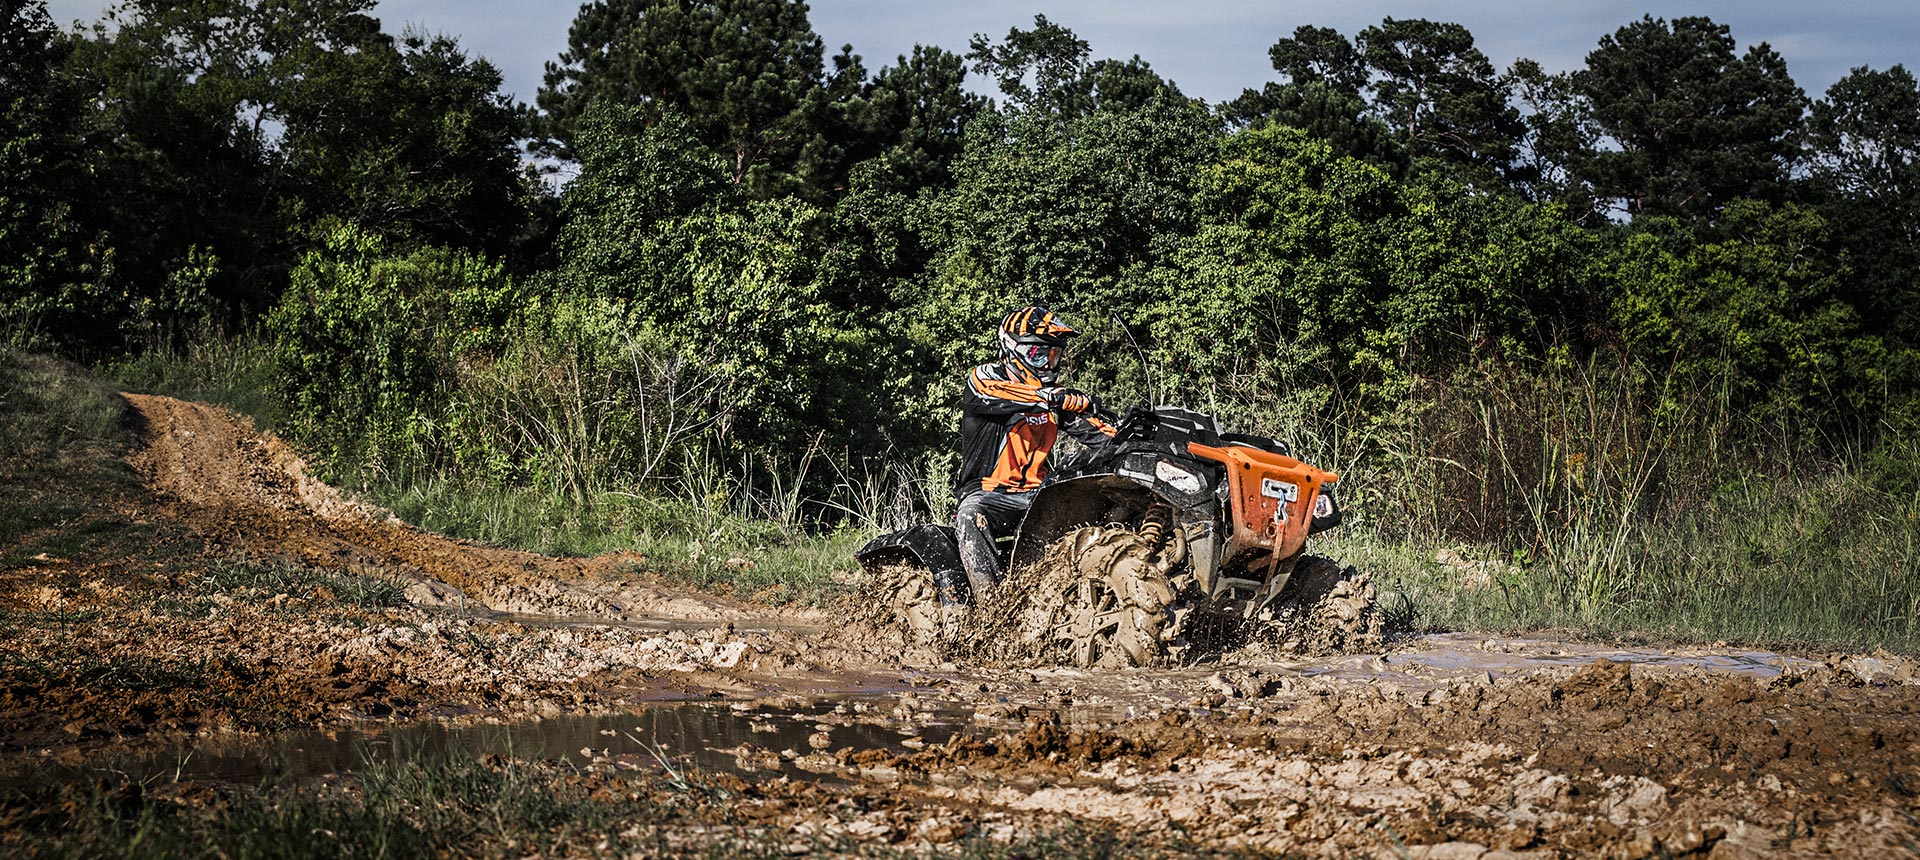 Polaris® ATV navigating a deep muddy hole